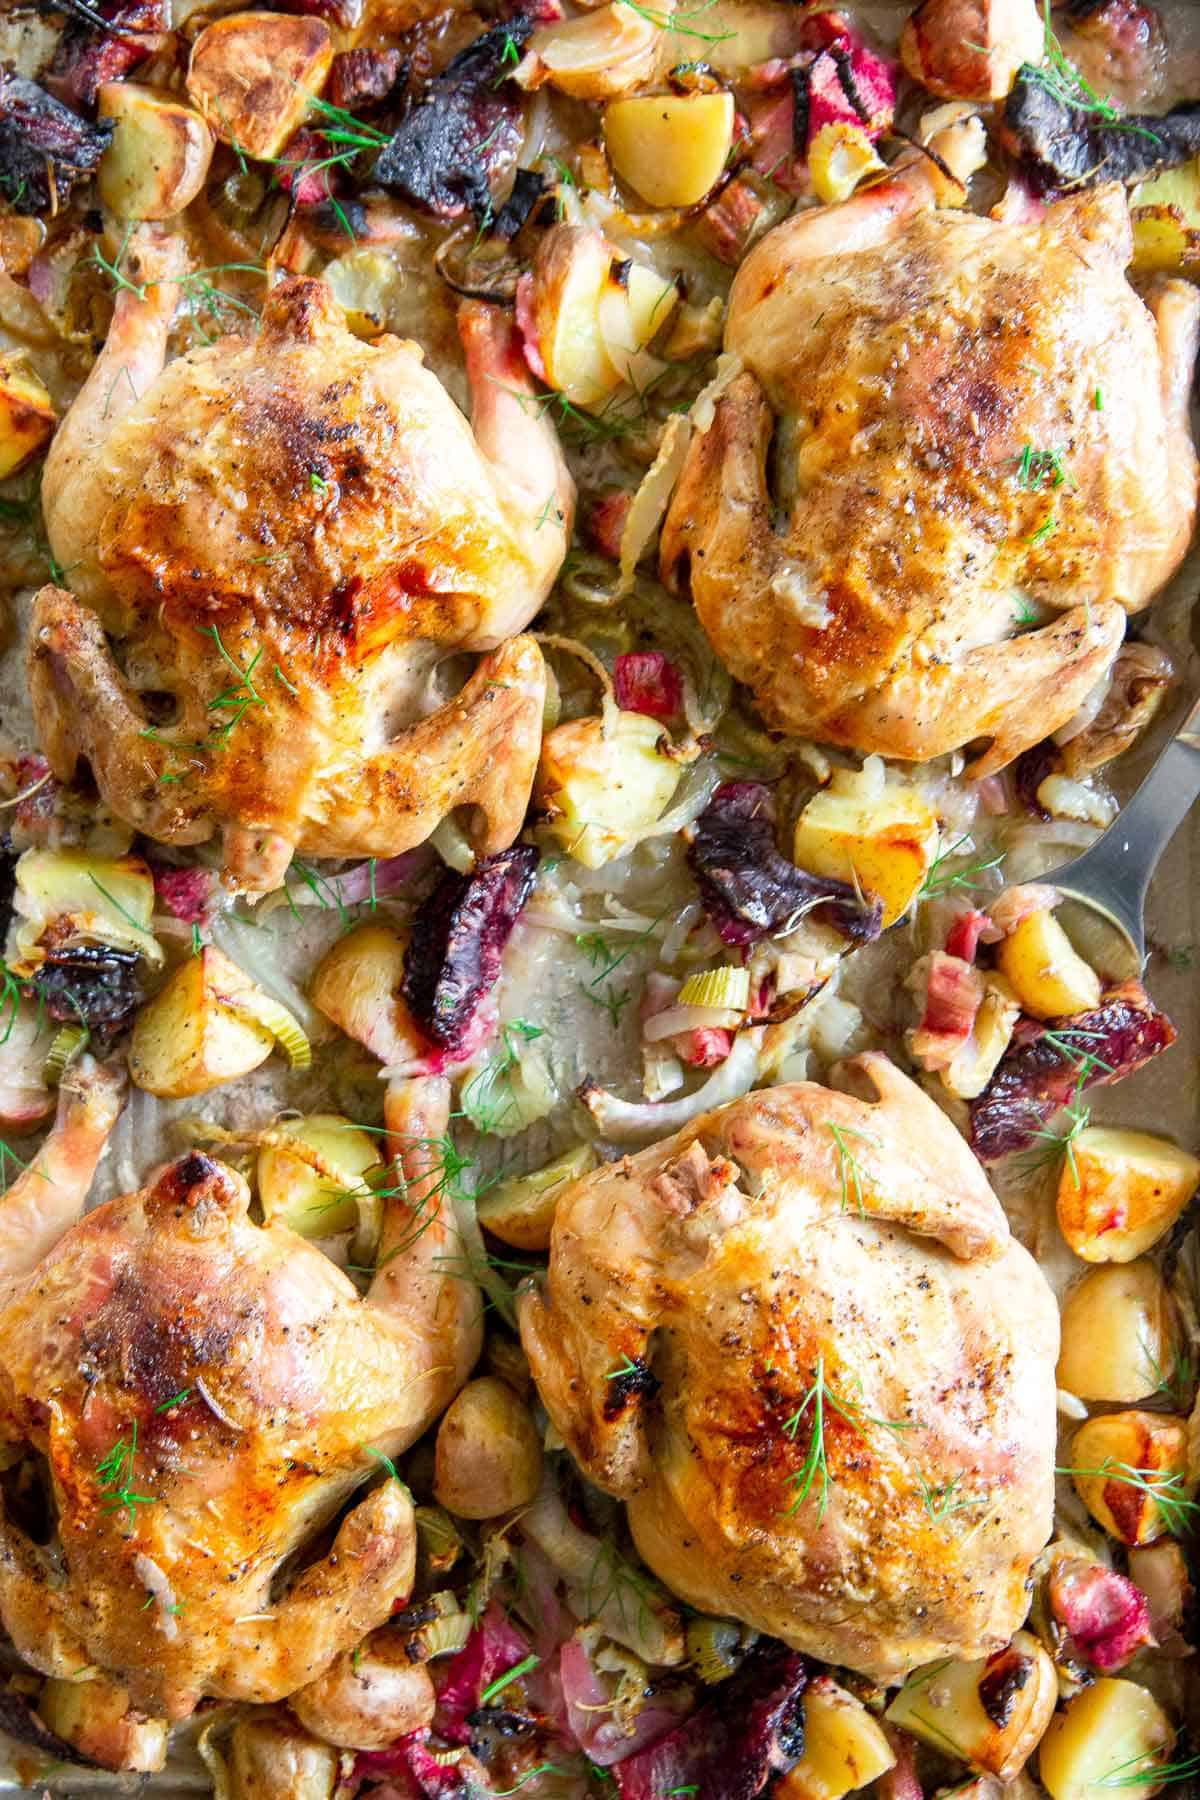 Looking for a spring dinner that's impressive, packed with flavor yet super simple? Try this sheet pan Cornish Game Hen recipe.